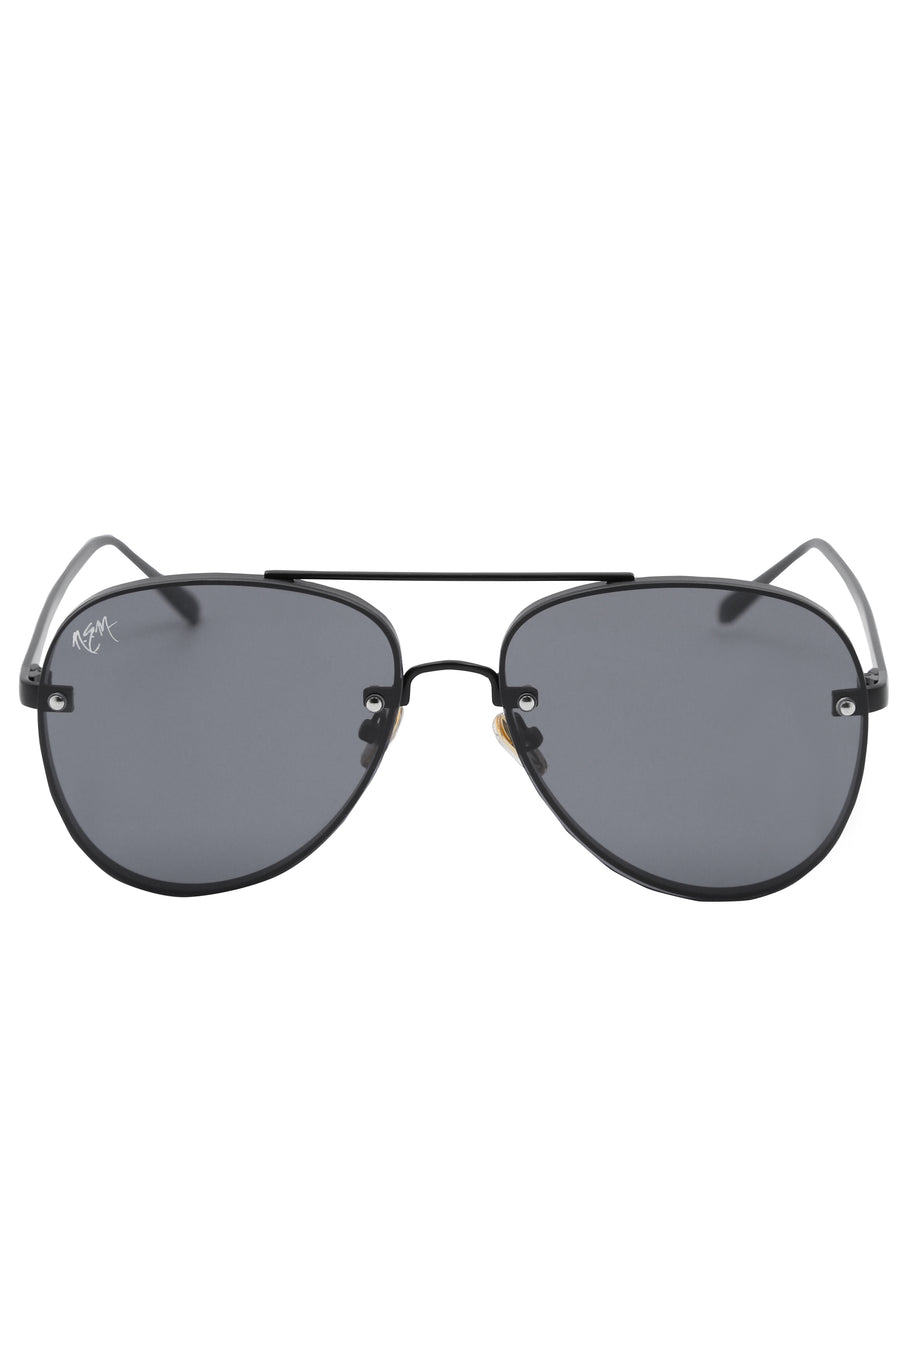 Roulette Matte Black Sunnies - NEM Fashion Store